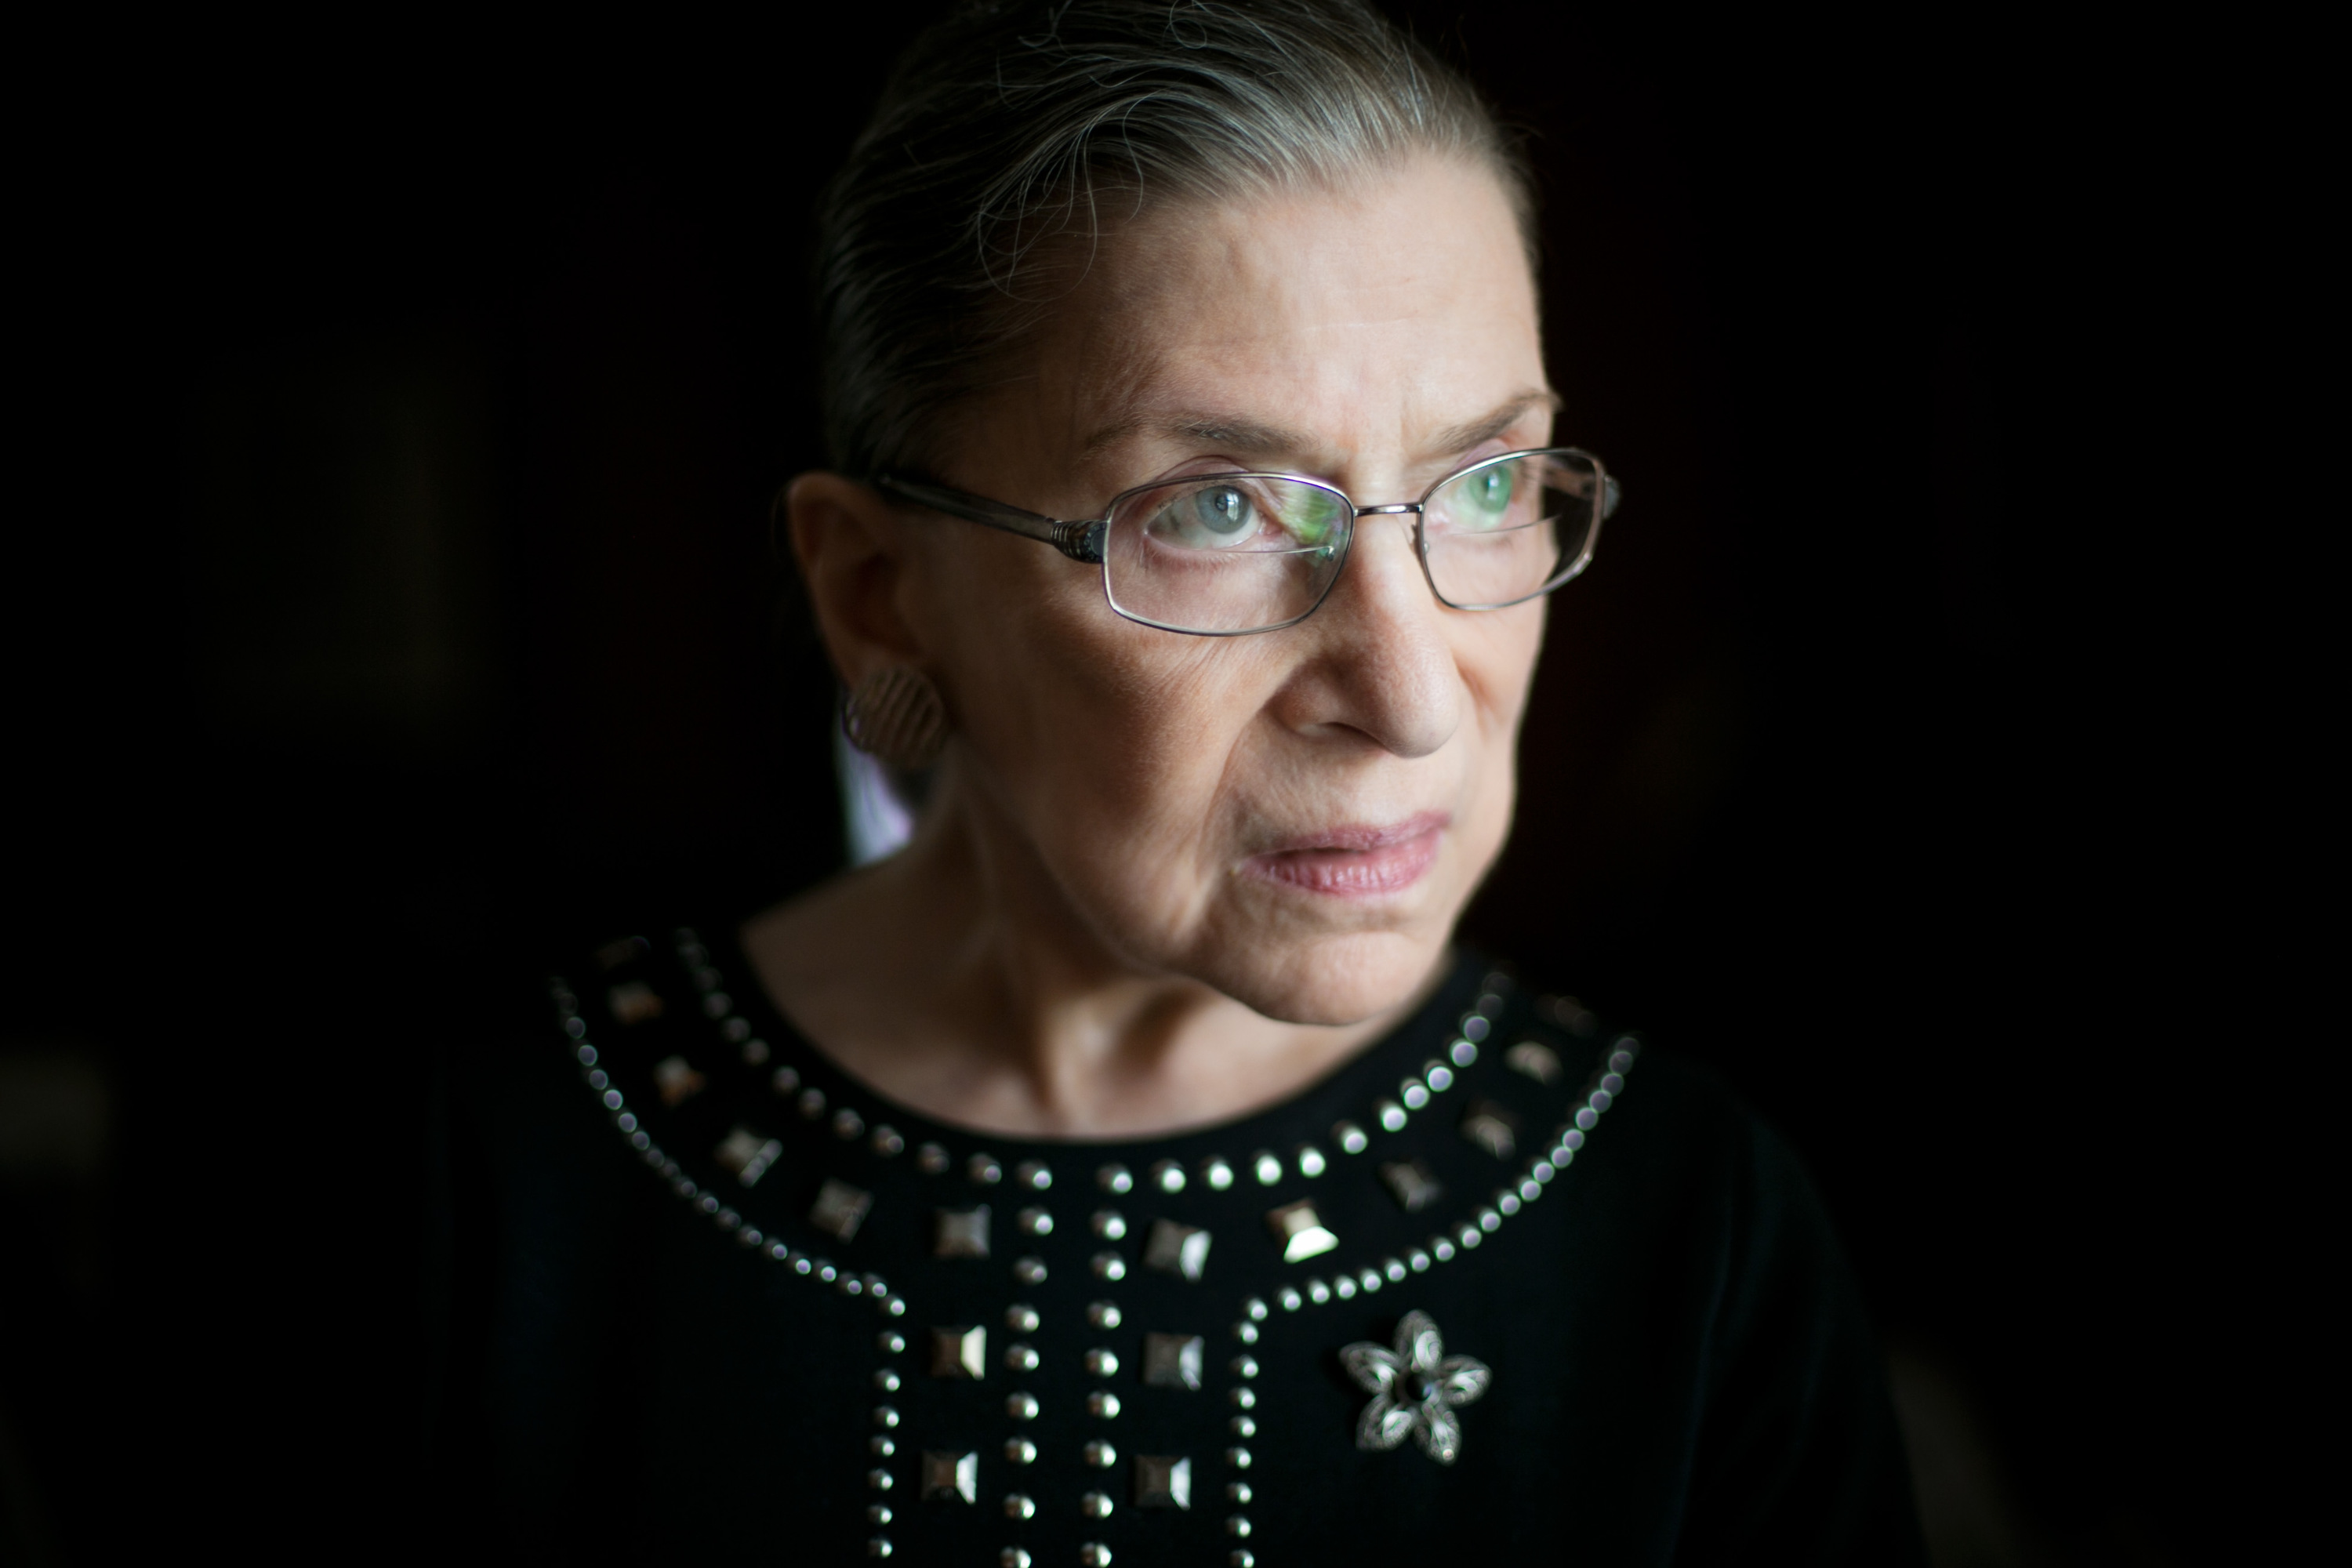 Supreme Court Justice Ruth Bader Ginsburg Dies Of Metastatic Pancreatic Cancer At 87 The Boston Globe